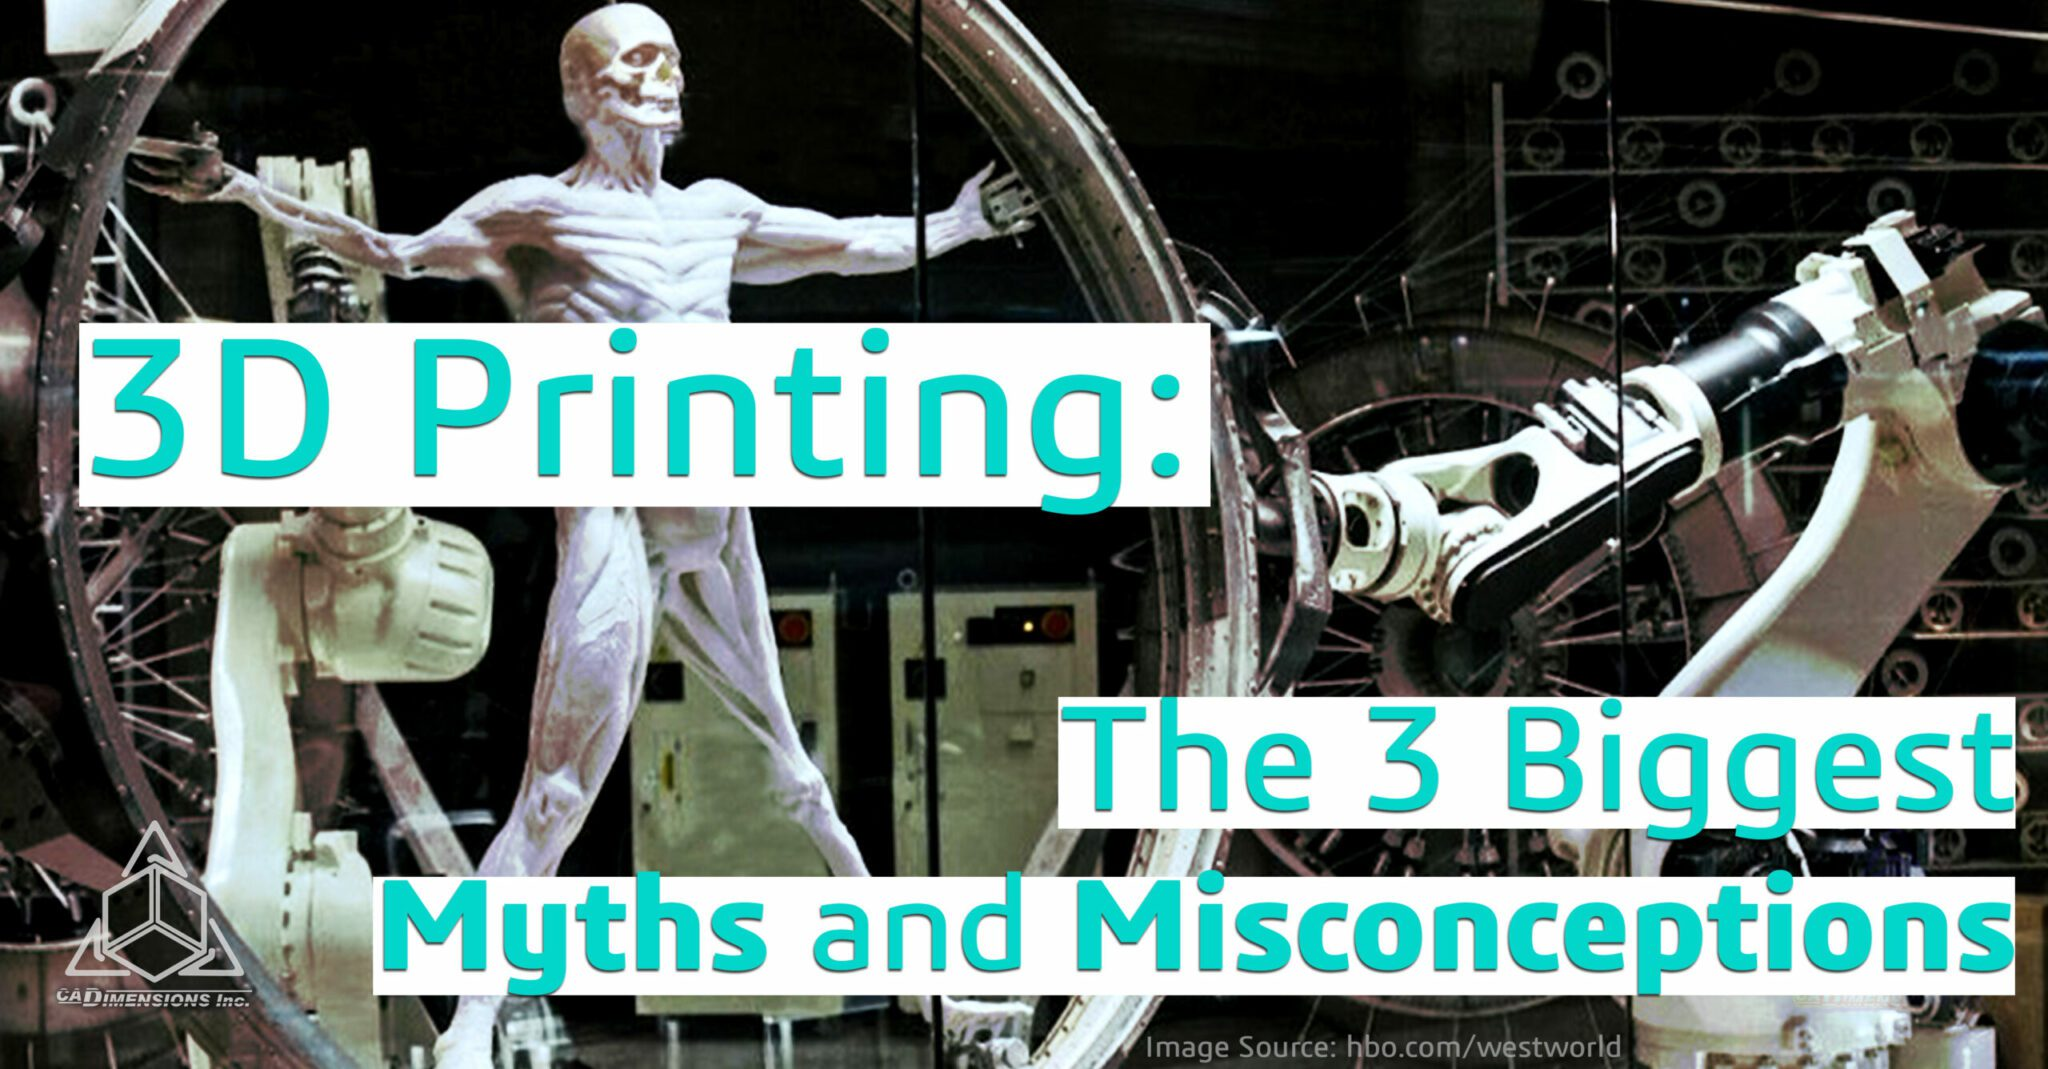 3D Printing The 3 Biggest Myths and Misconceptions